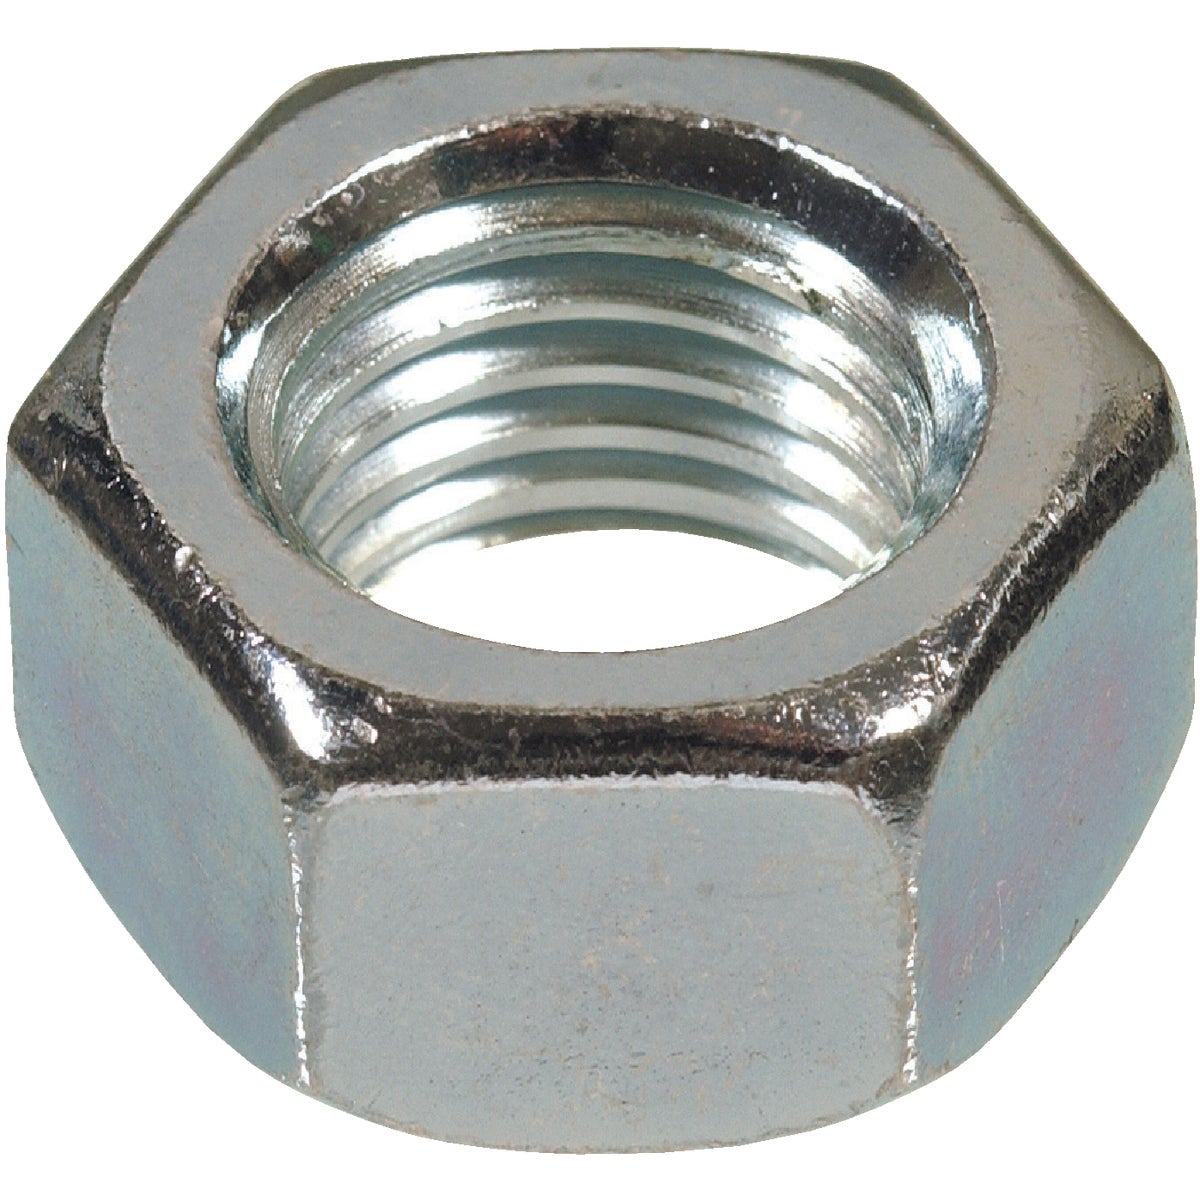 7/16-14 C THREAD HEX NUT